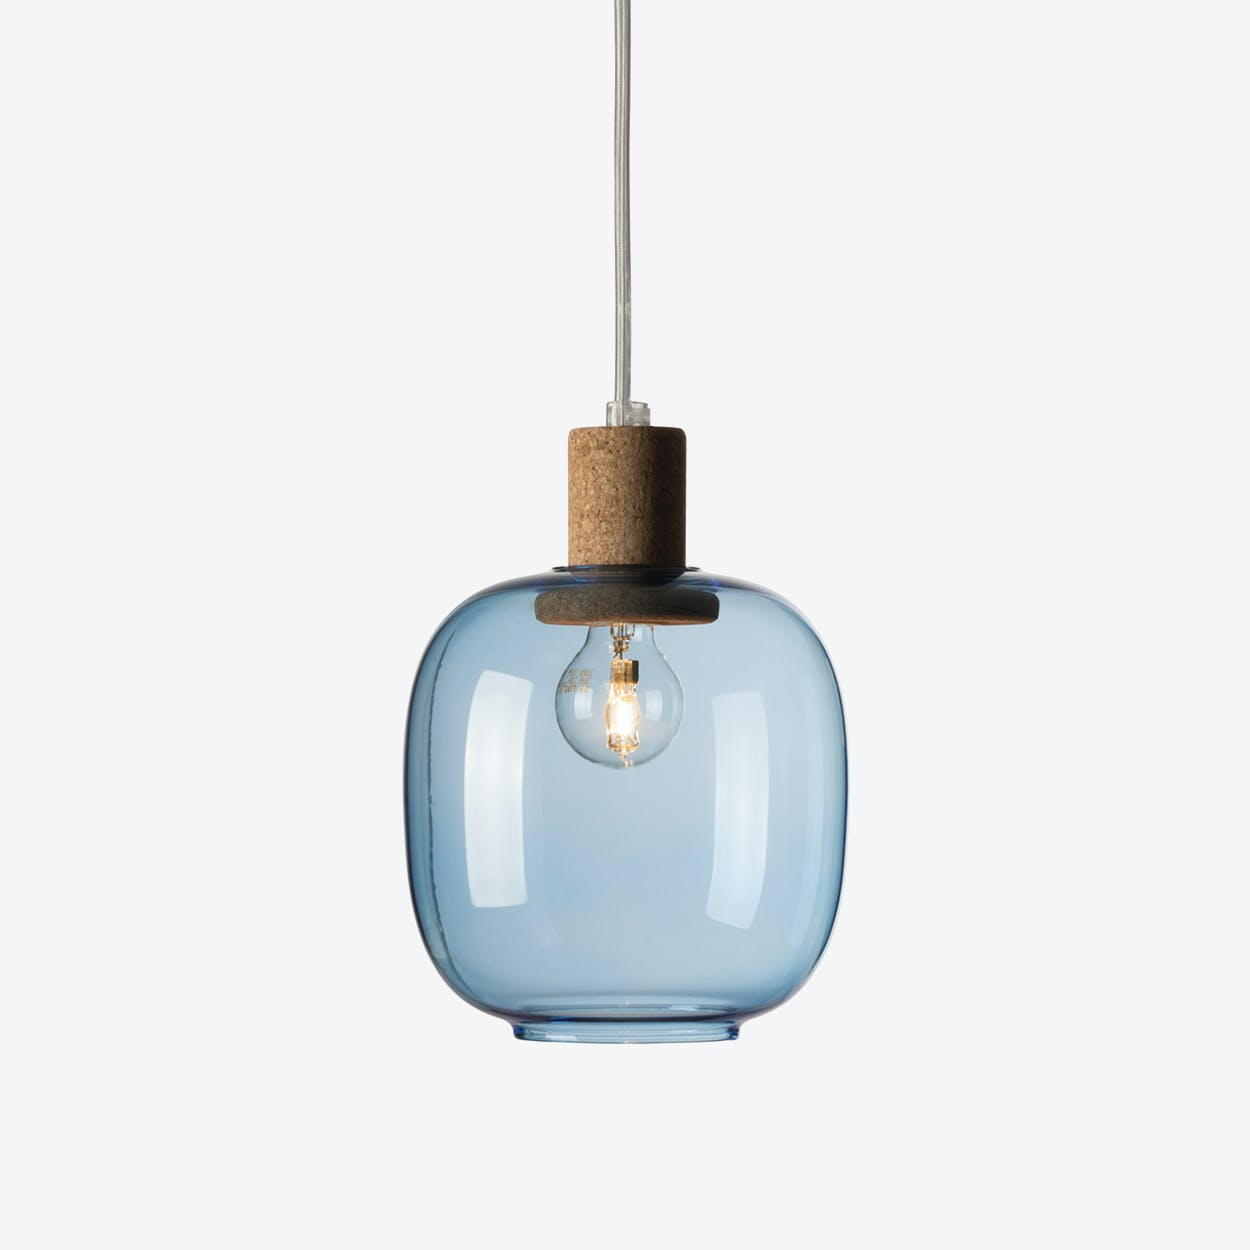 Picia Pendant Lamp in Blue Glass